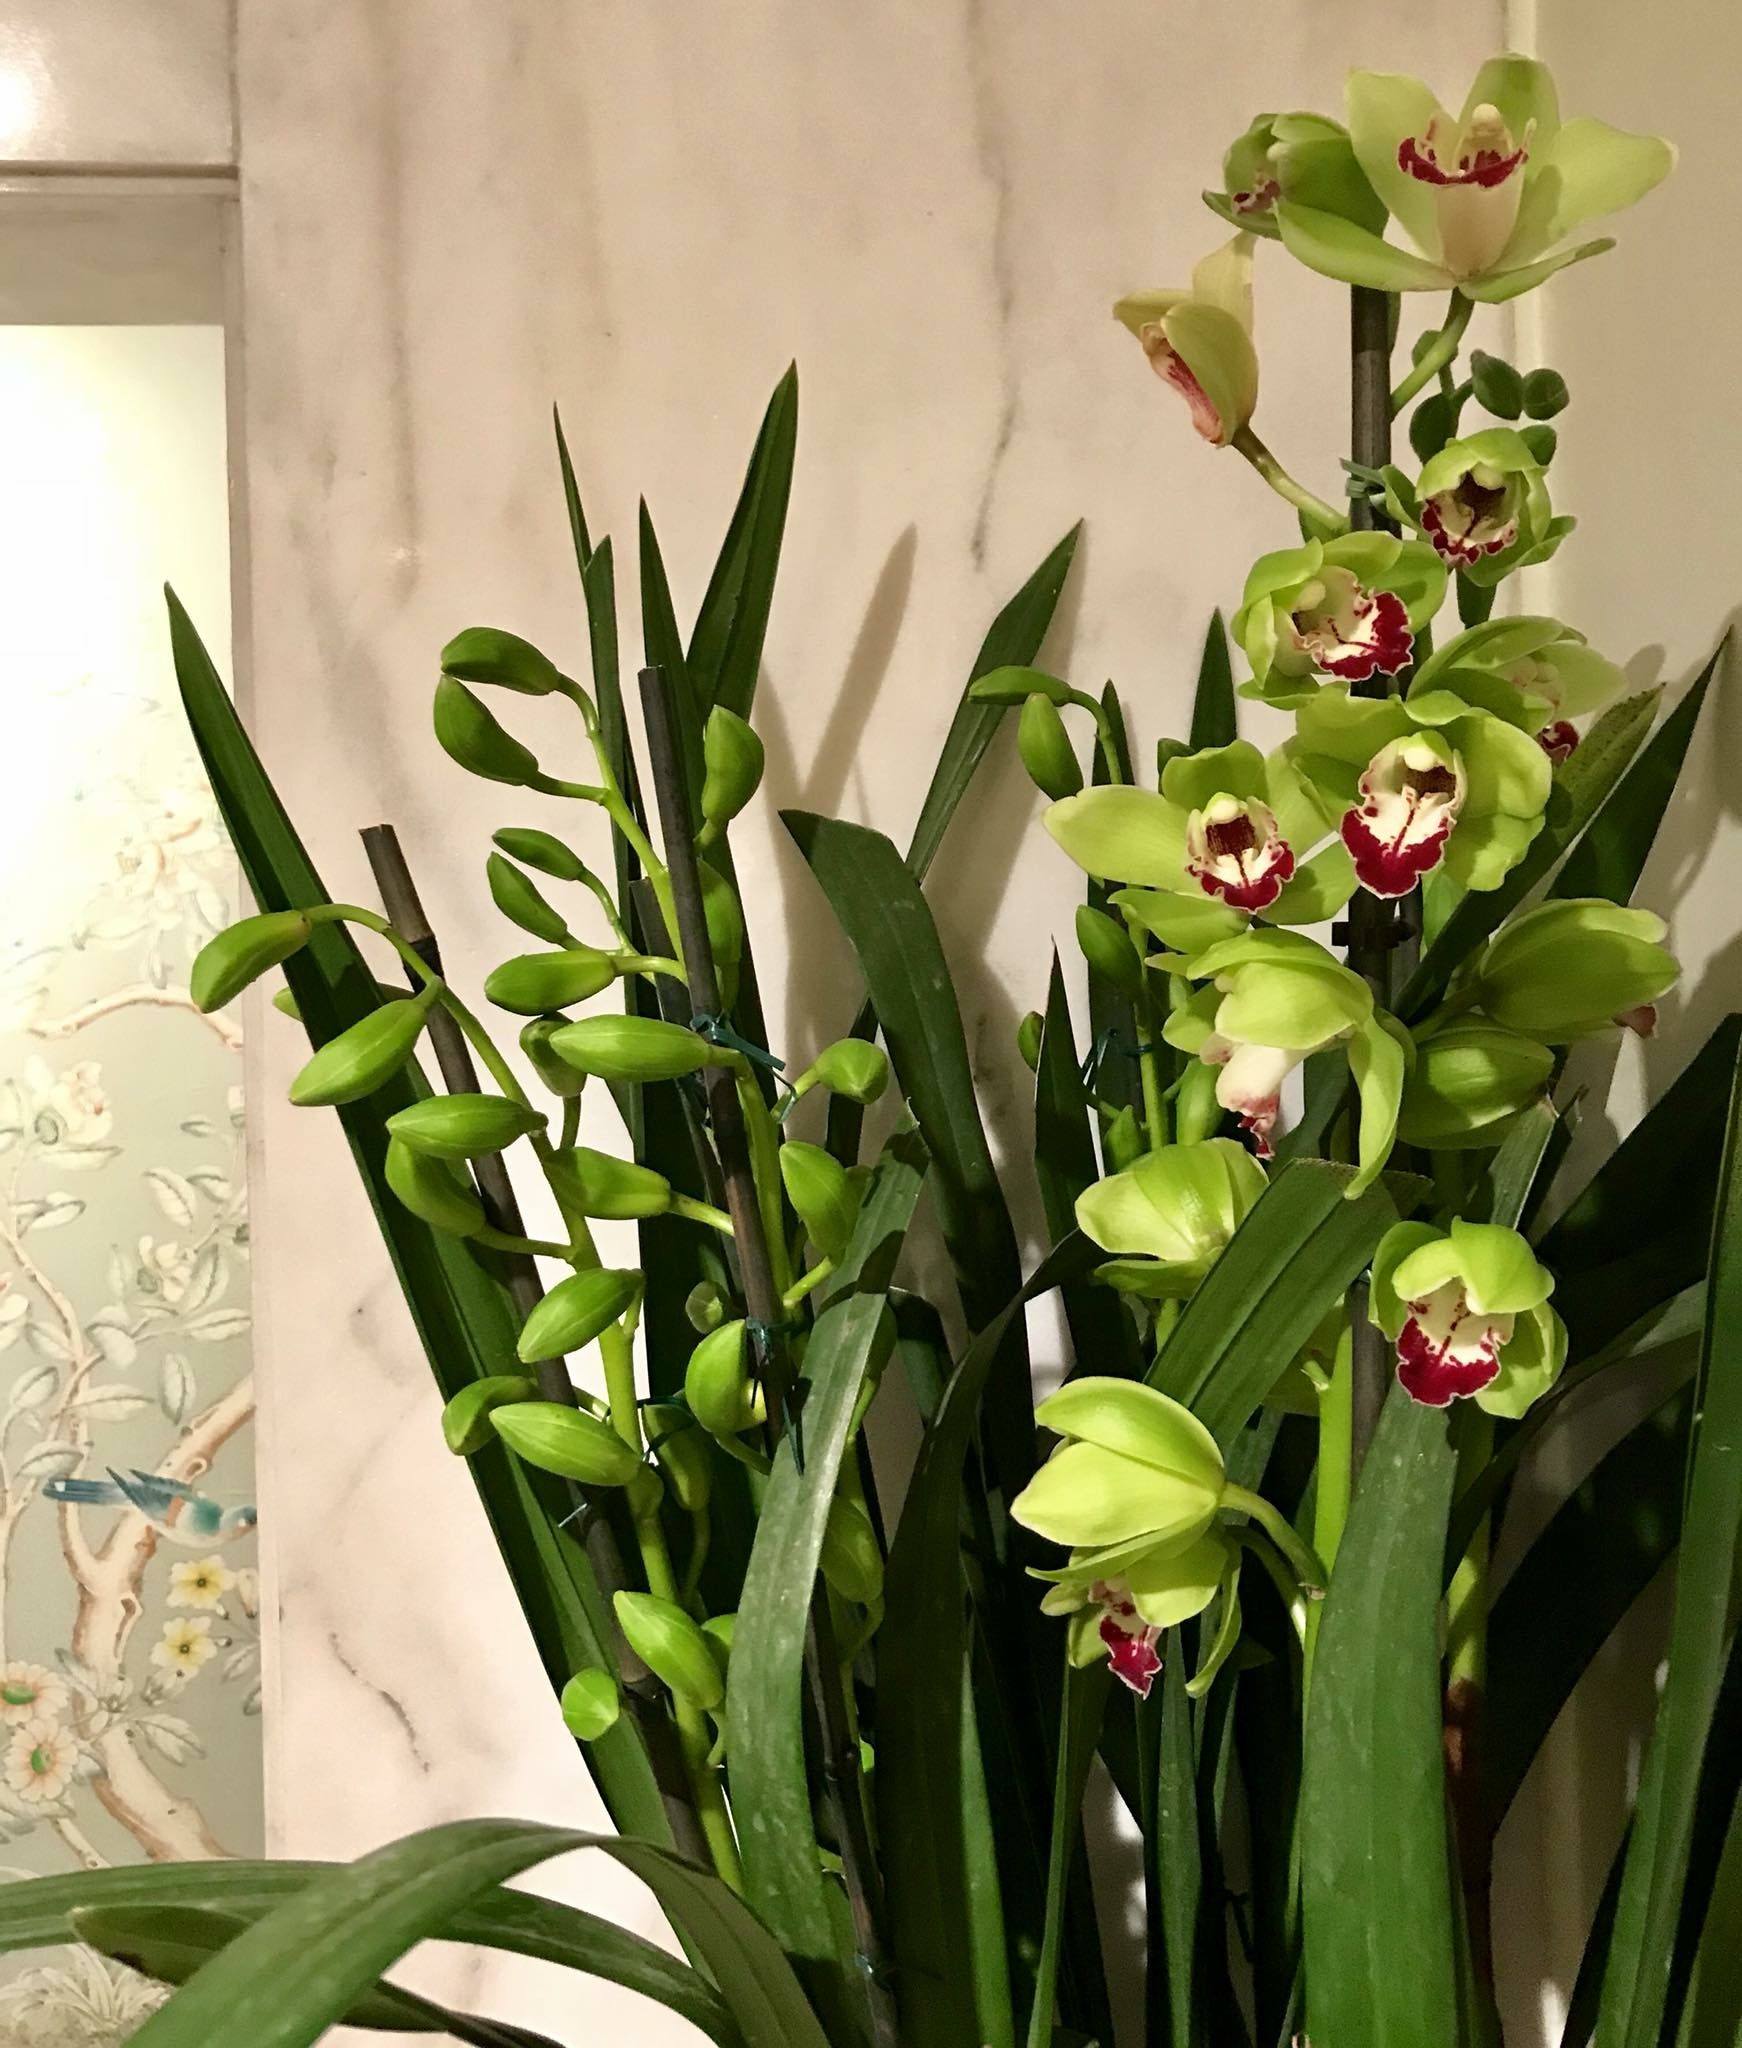 My Beautiful Cymbidium Orchid S Are Blooming And They Are My Favorite Type Of Orchid Orchid Seeds Orchids Types Of Orchids